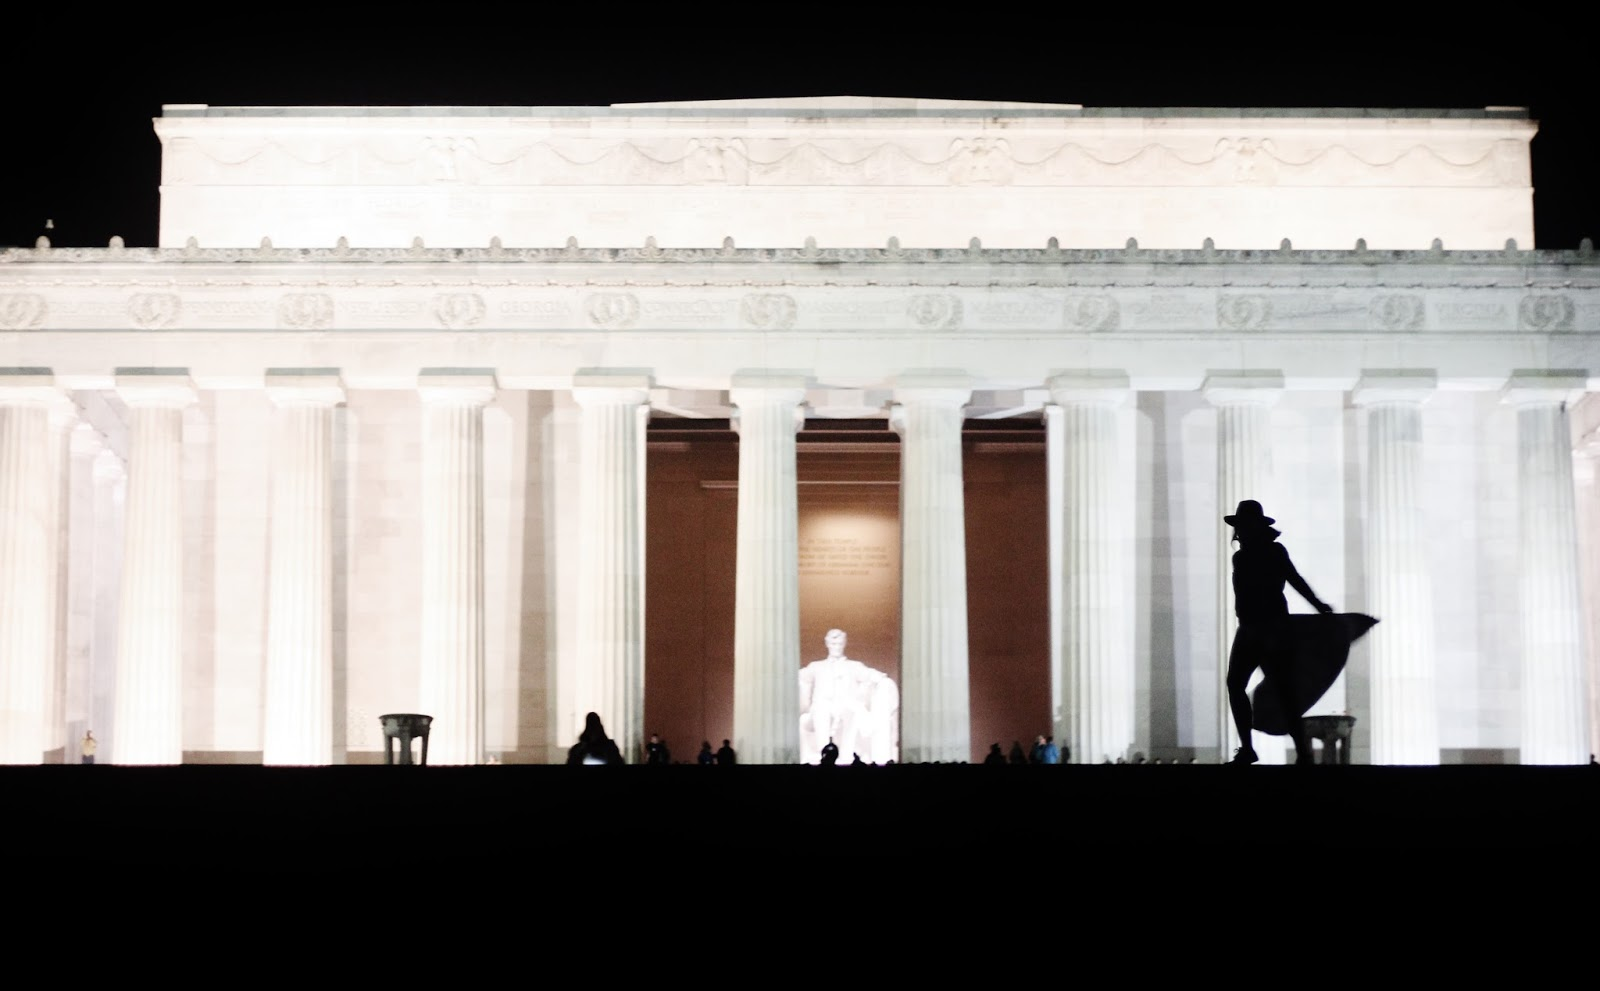 Lincoln Memorial de noche en Washington D.C.